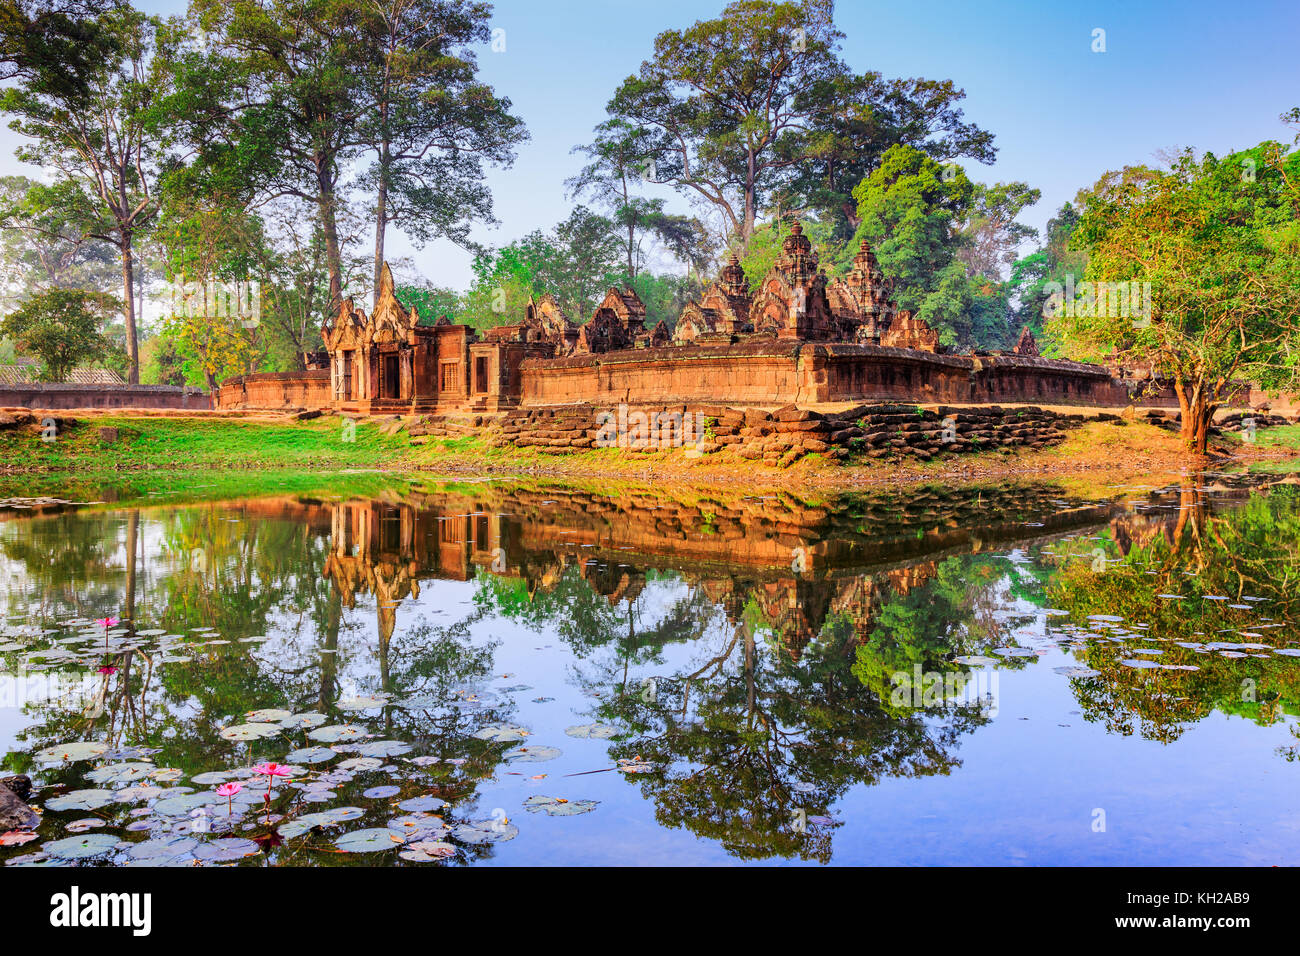 Angkor, Cambodia. Banteay Srei (Citadel of the Women) temple. - Stock Image